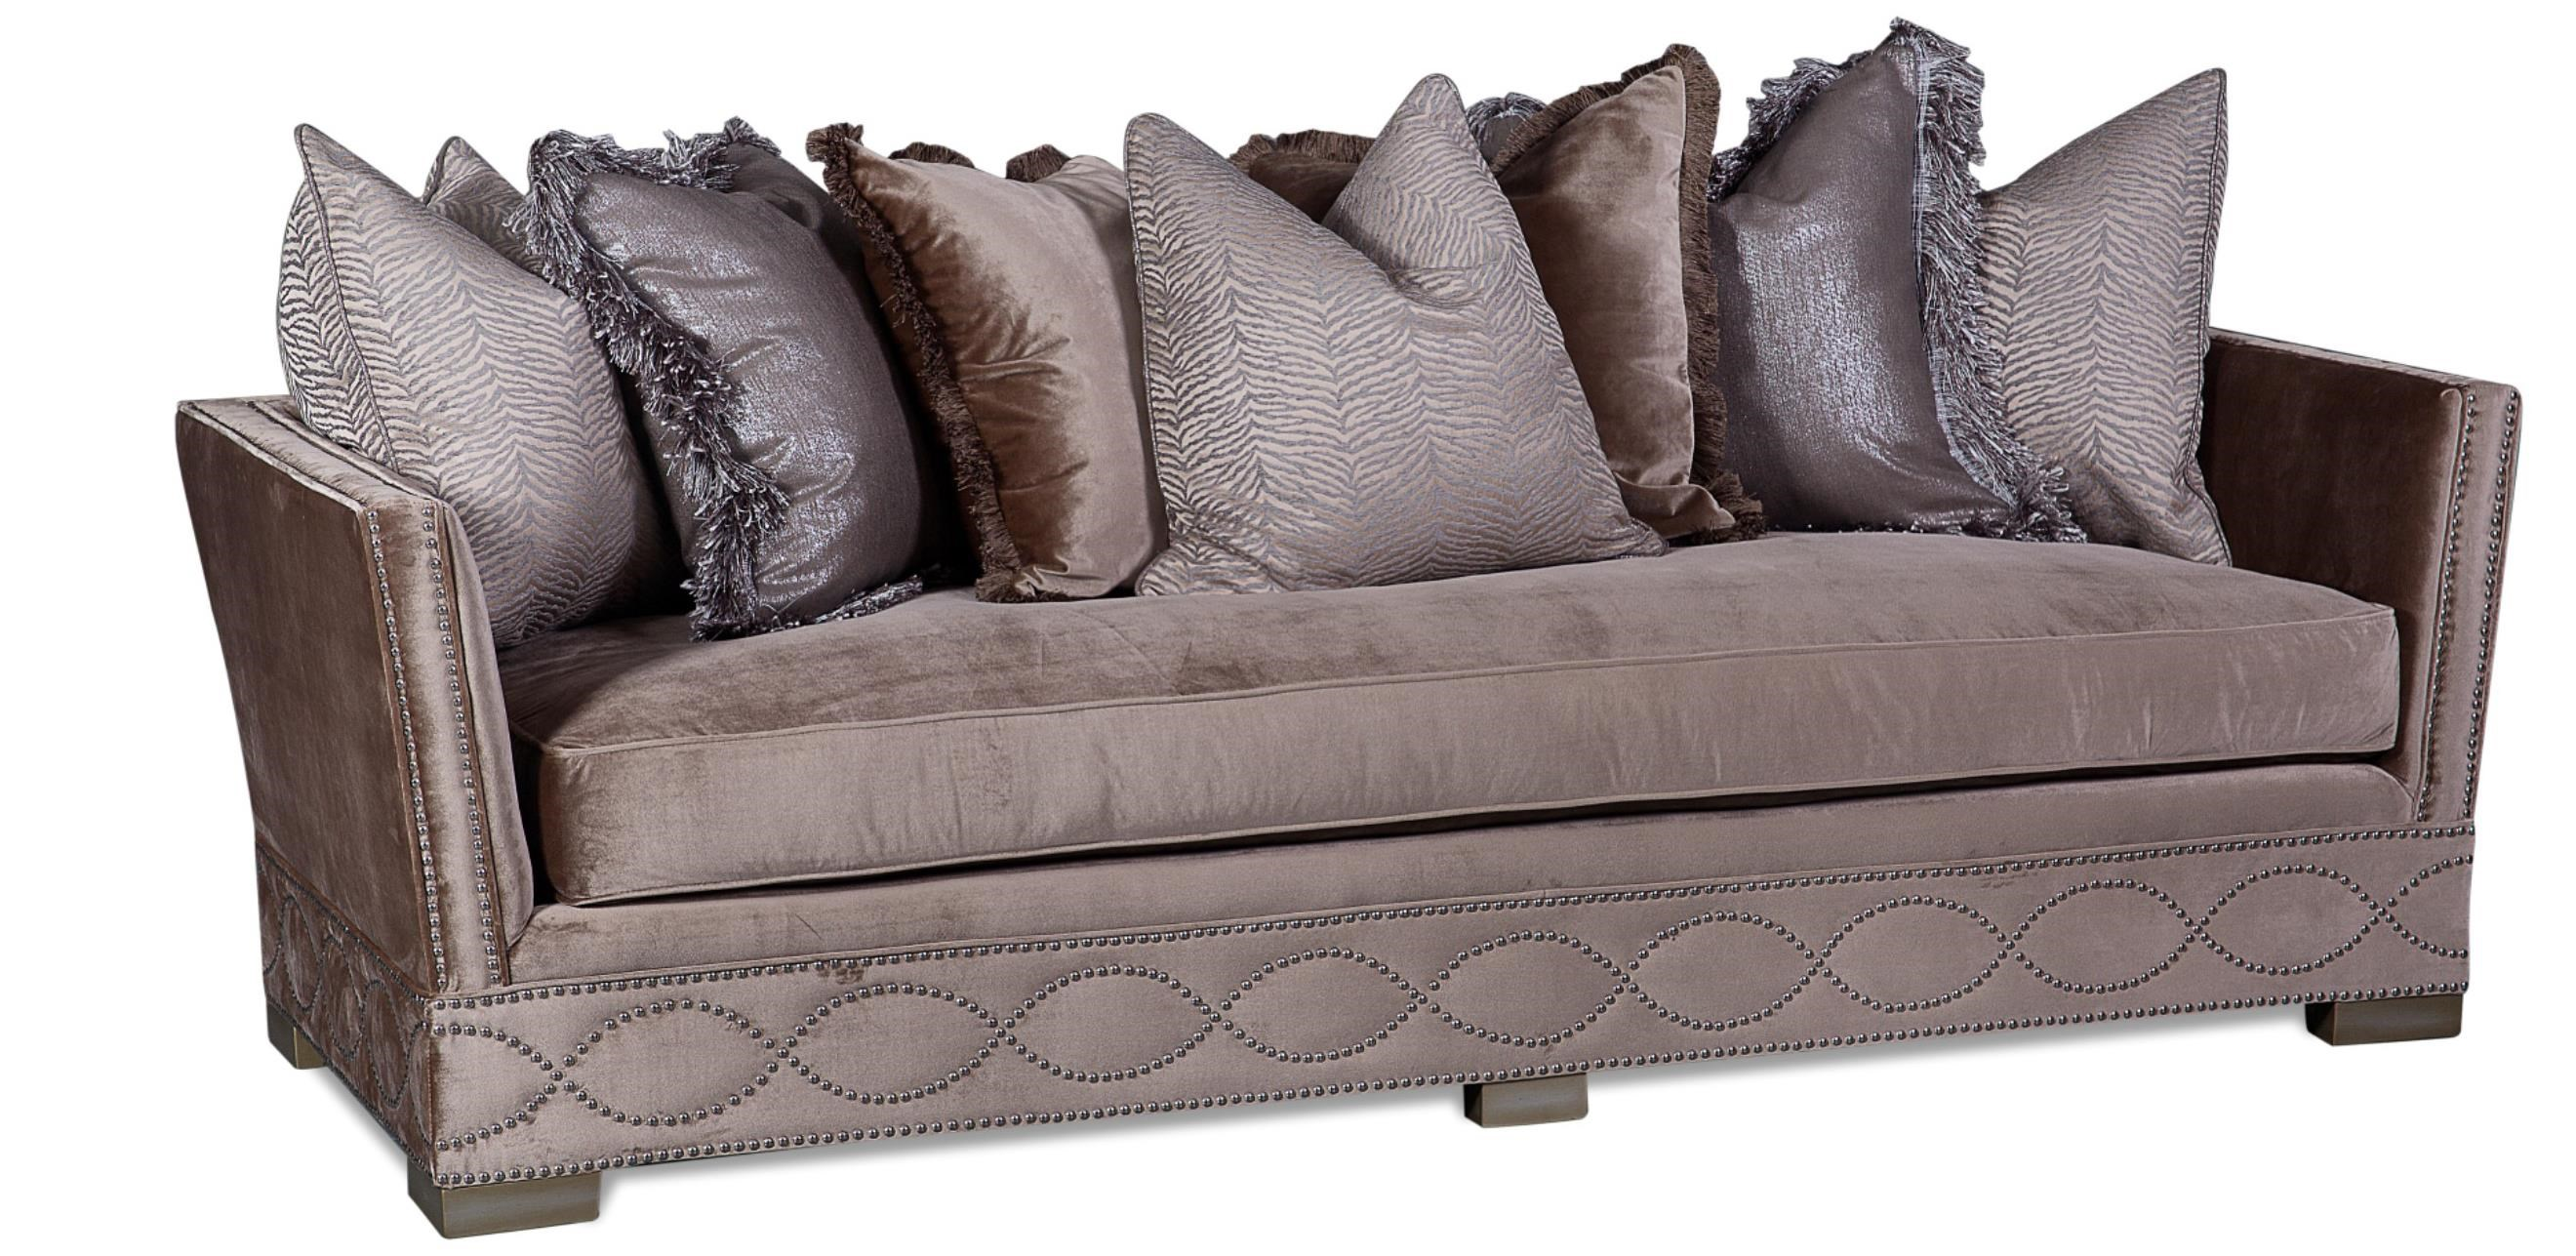 Marquesa Tuxedo Sofa With Loose Back Pillows And Bench Seat Cushion